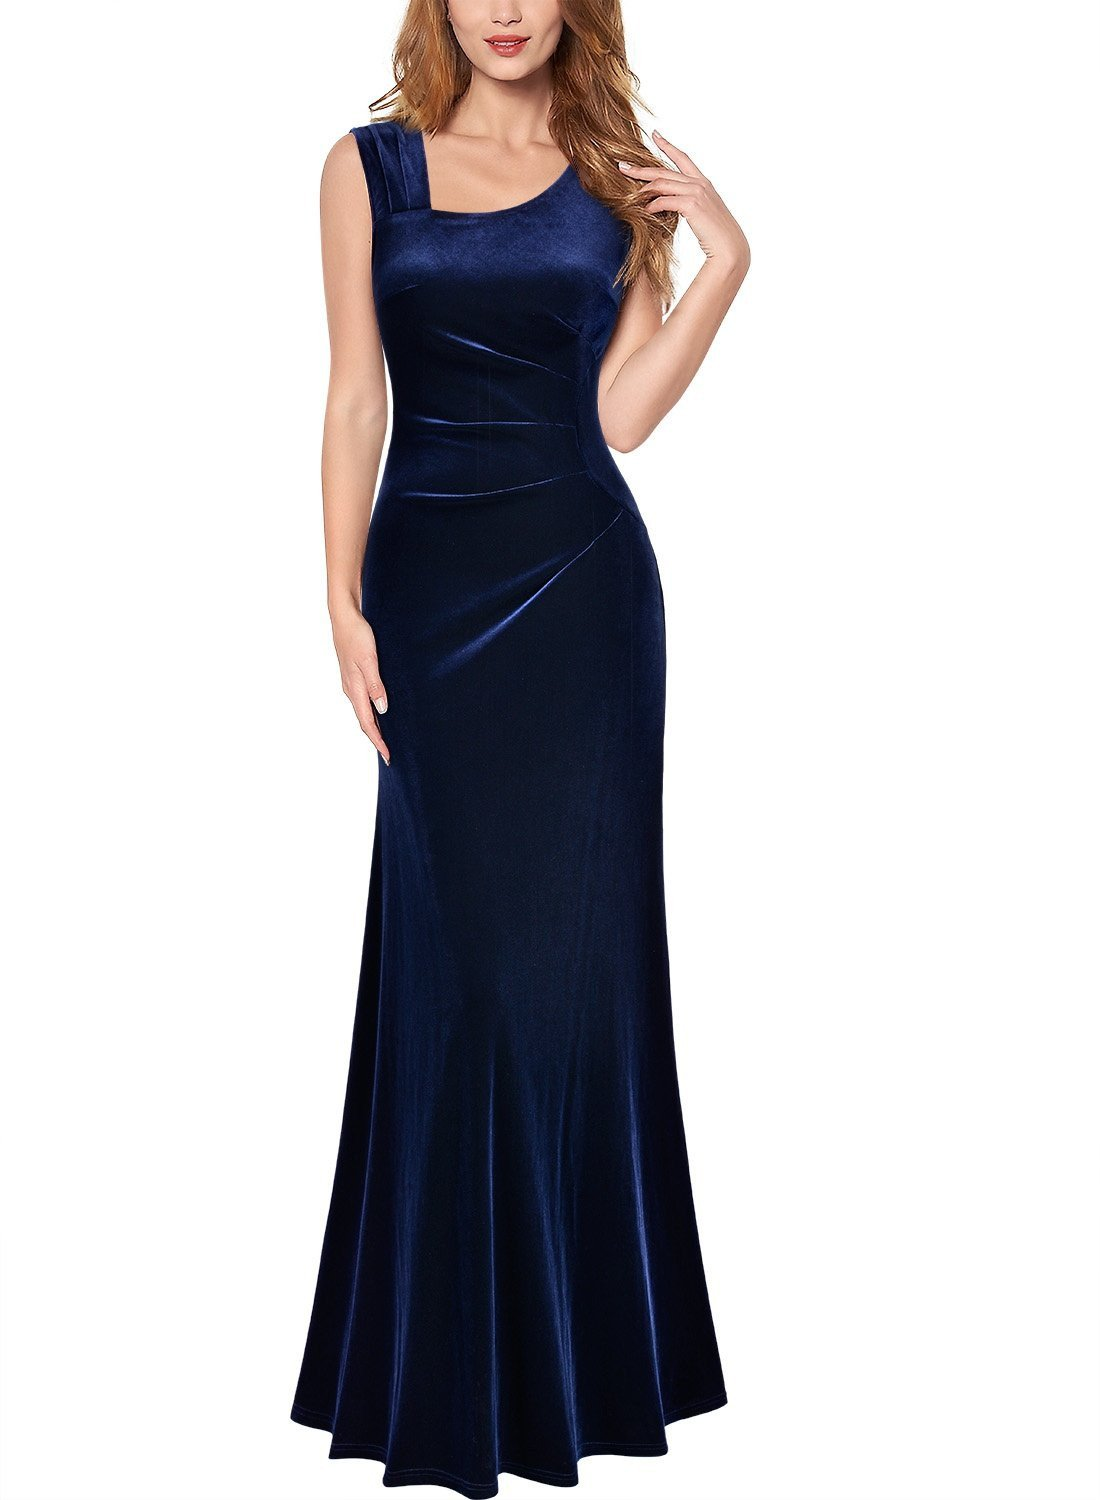 Sexy V Neck Pleuche Ruffles Formal Party Maxi Dress